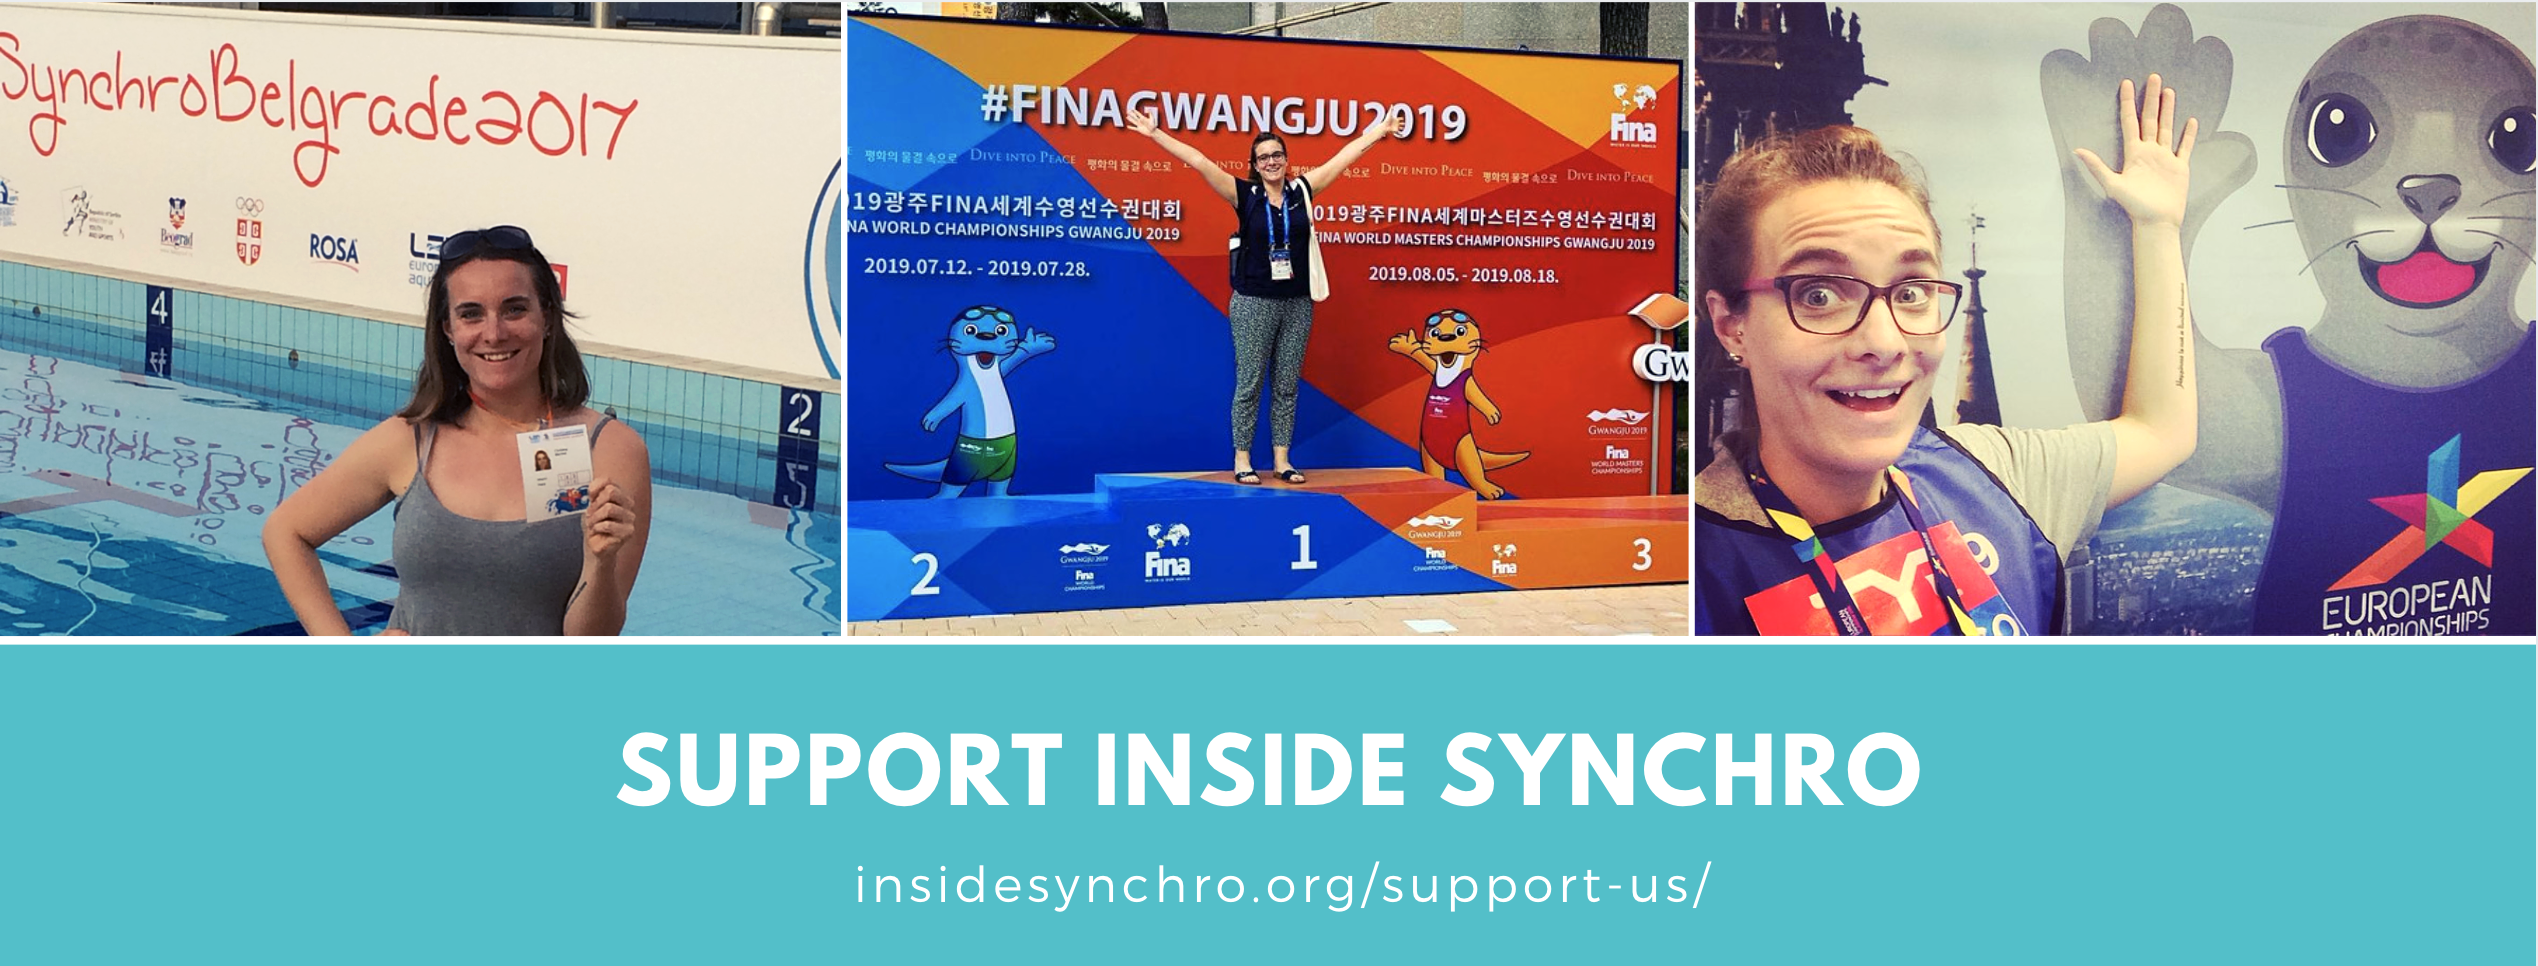 Support Inside Synchro Banner